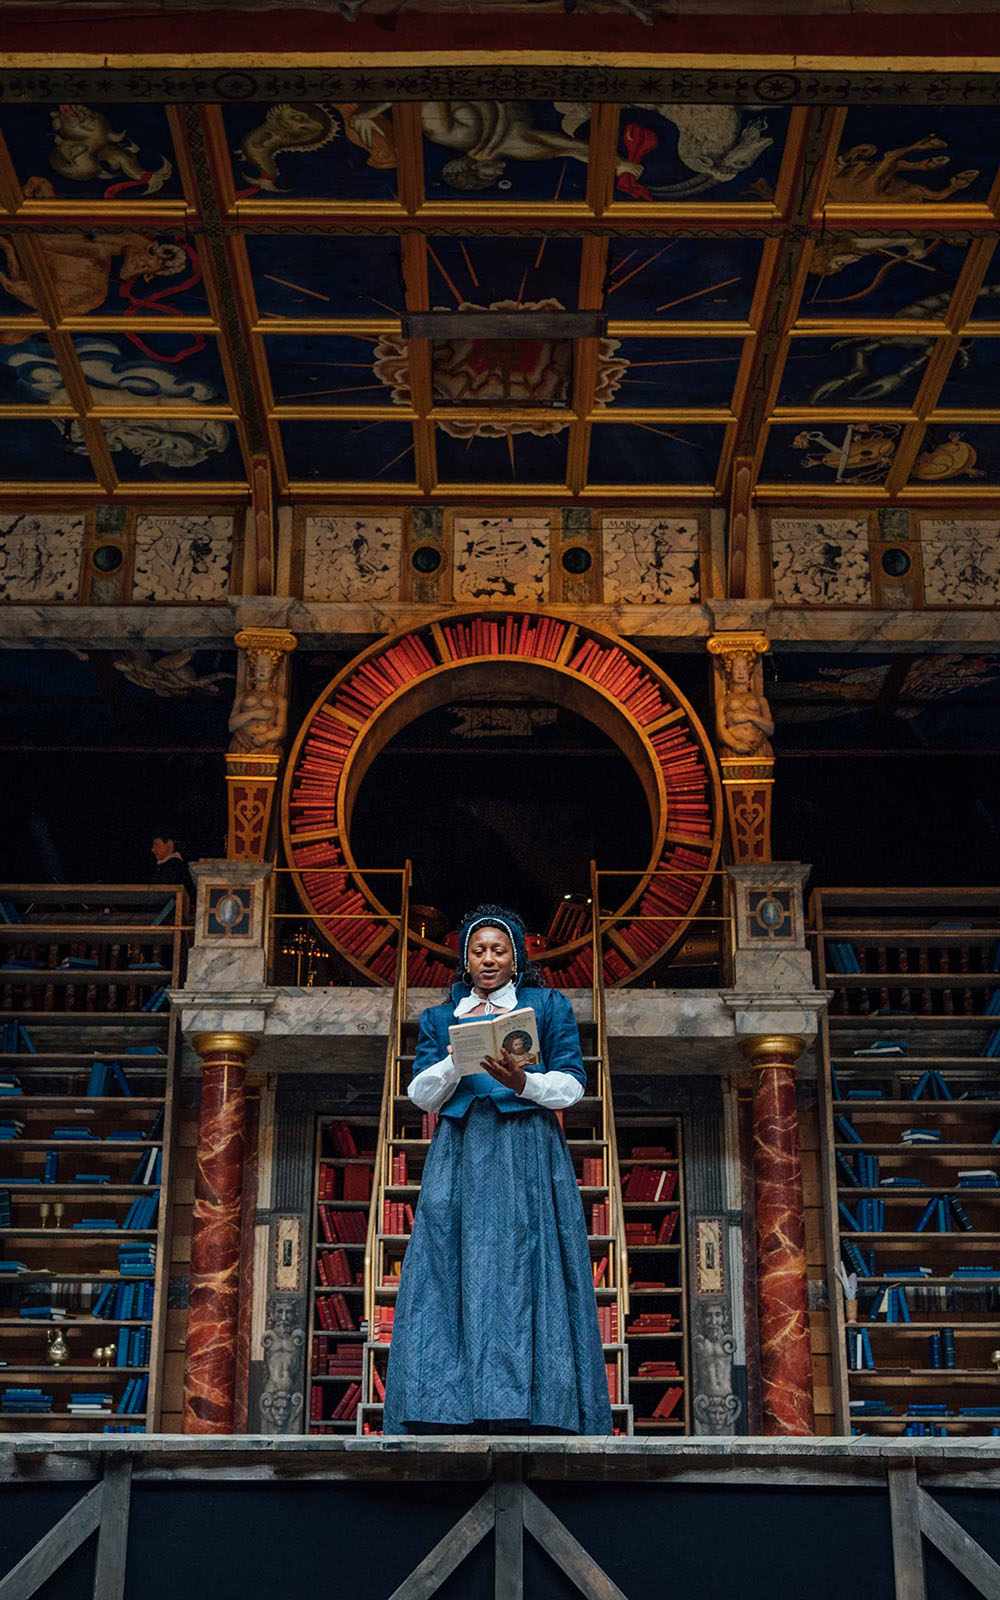 A woman wearing a blue Elizabethan corset dress stands on stage, reading a book, with shelves of bookcases behind her.